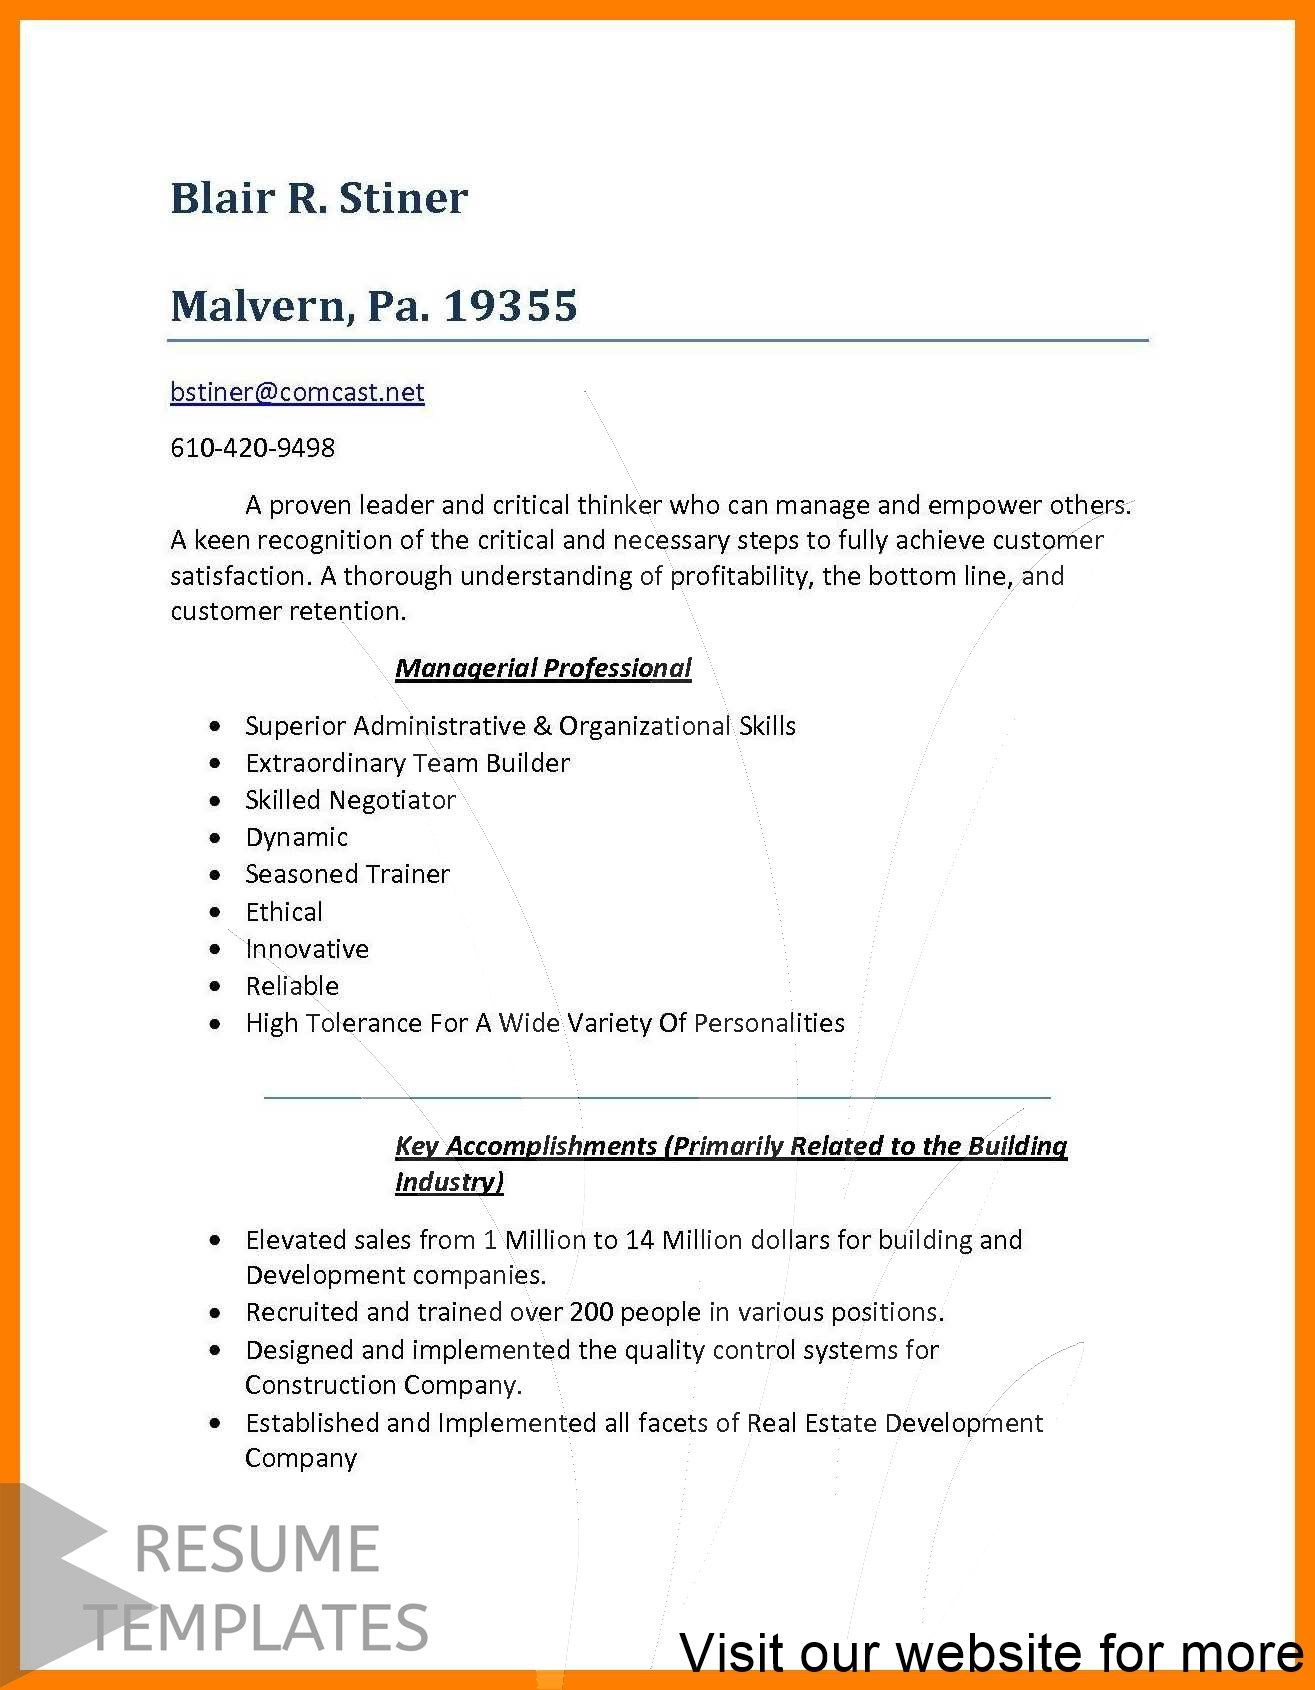 professional resume templates psd in 2020 Resume